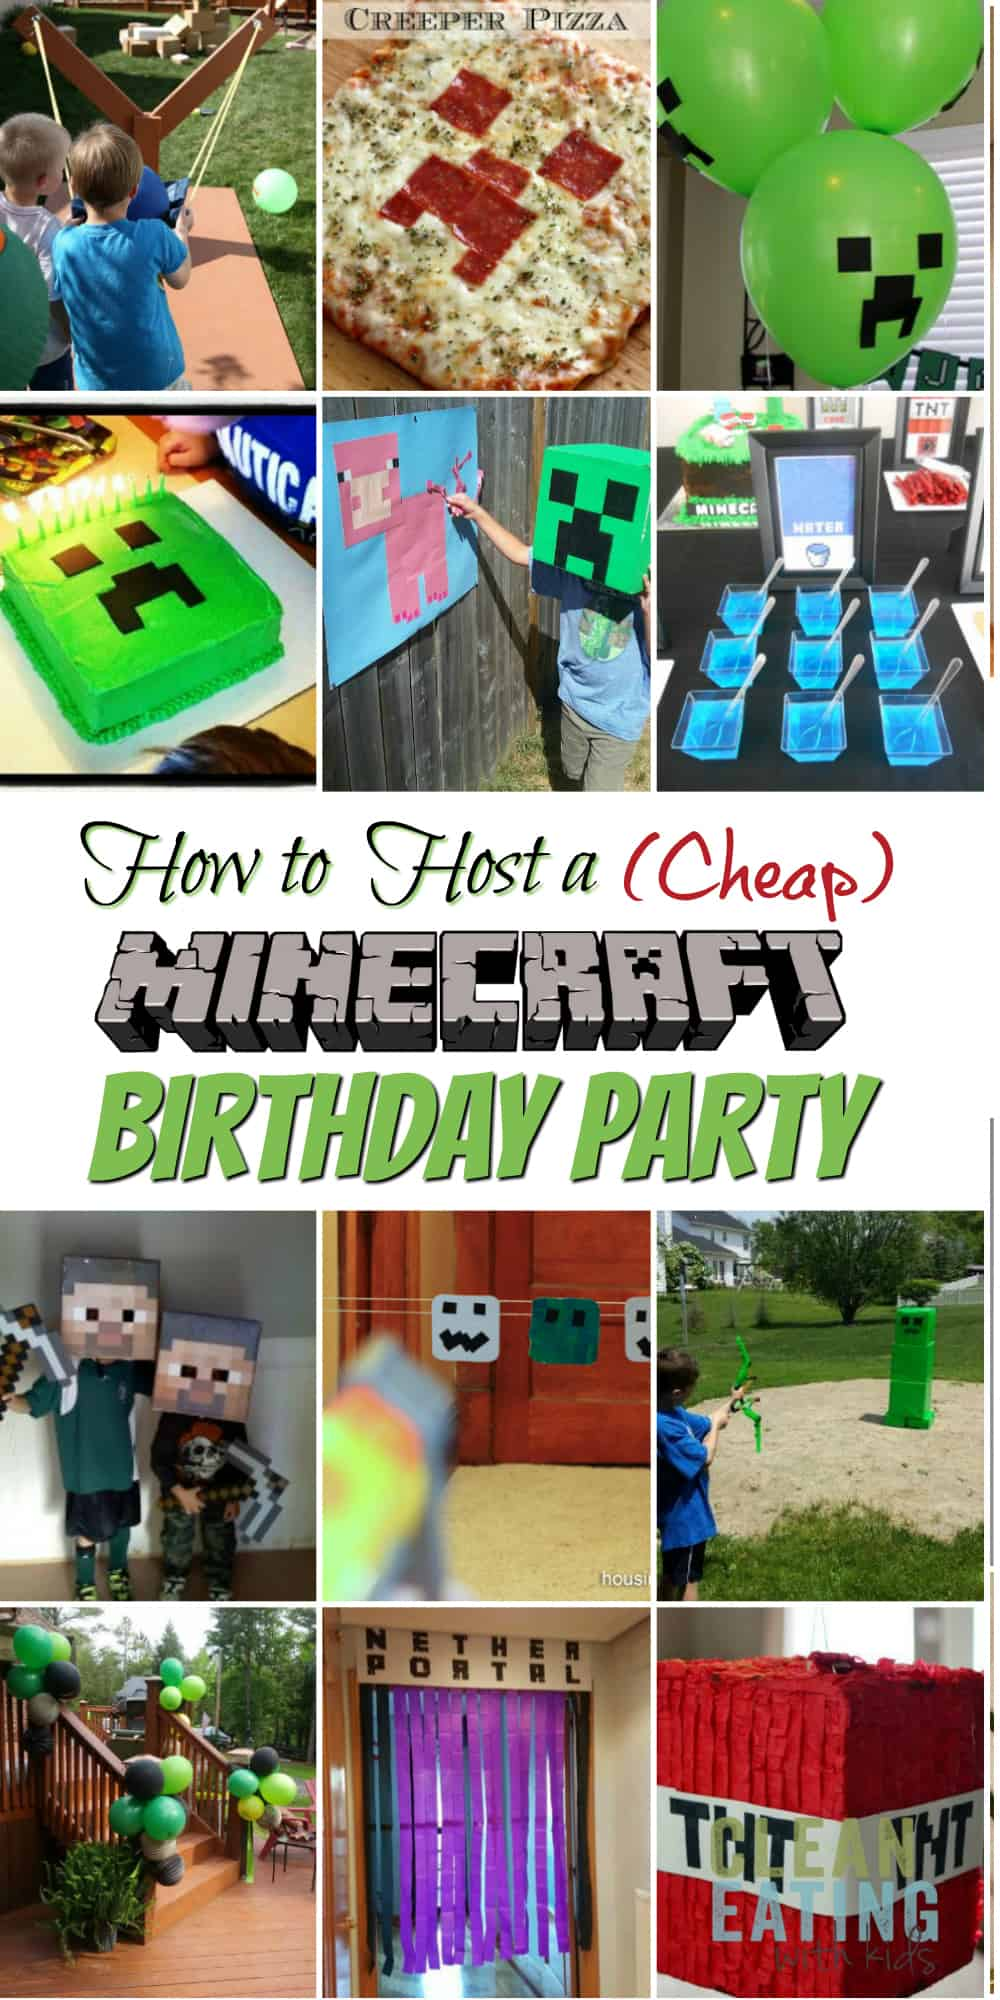 photograph regarding Minecraft Labels Printable identify How towards Host a (Affordable!) Minecraft Birthday Bash (with